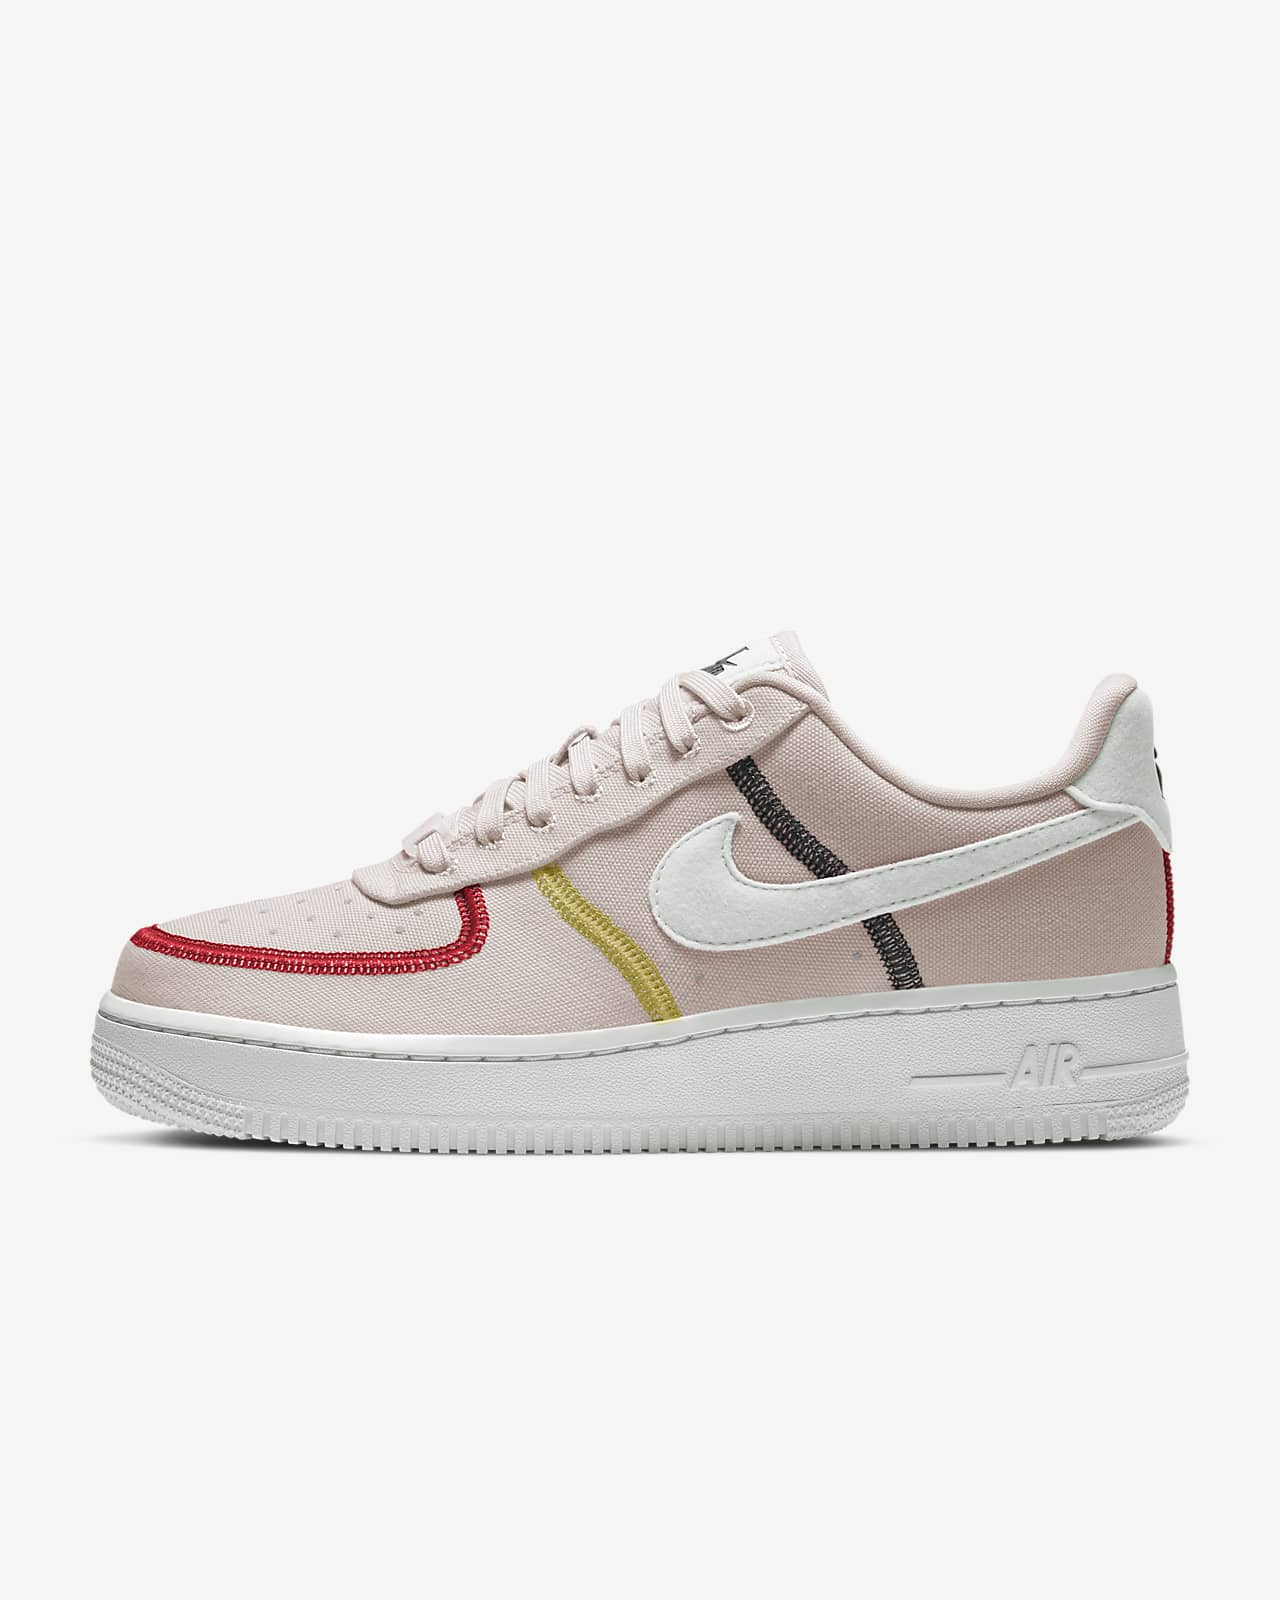 des chaussures nike air force 1